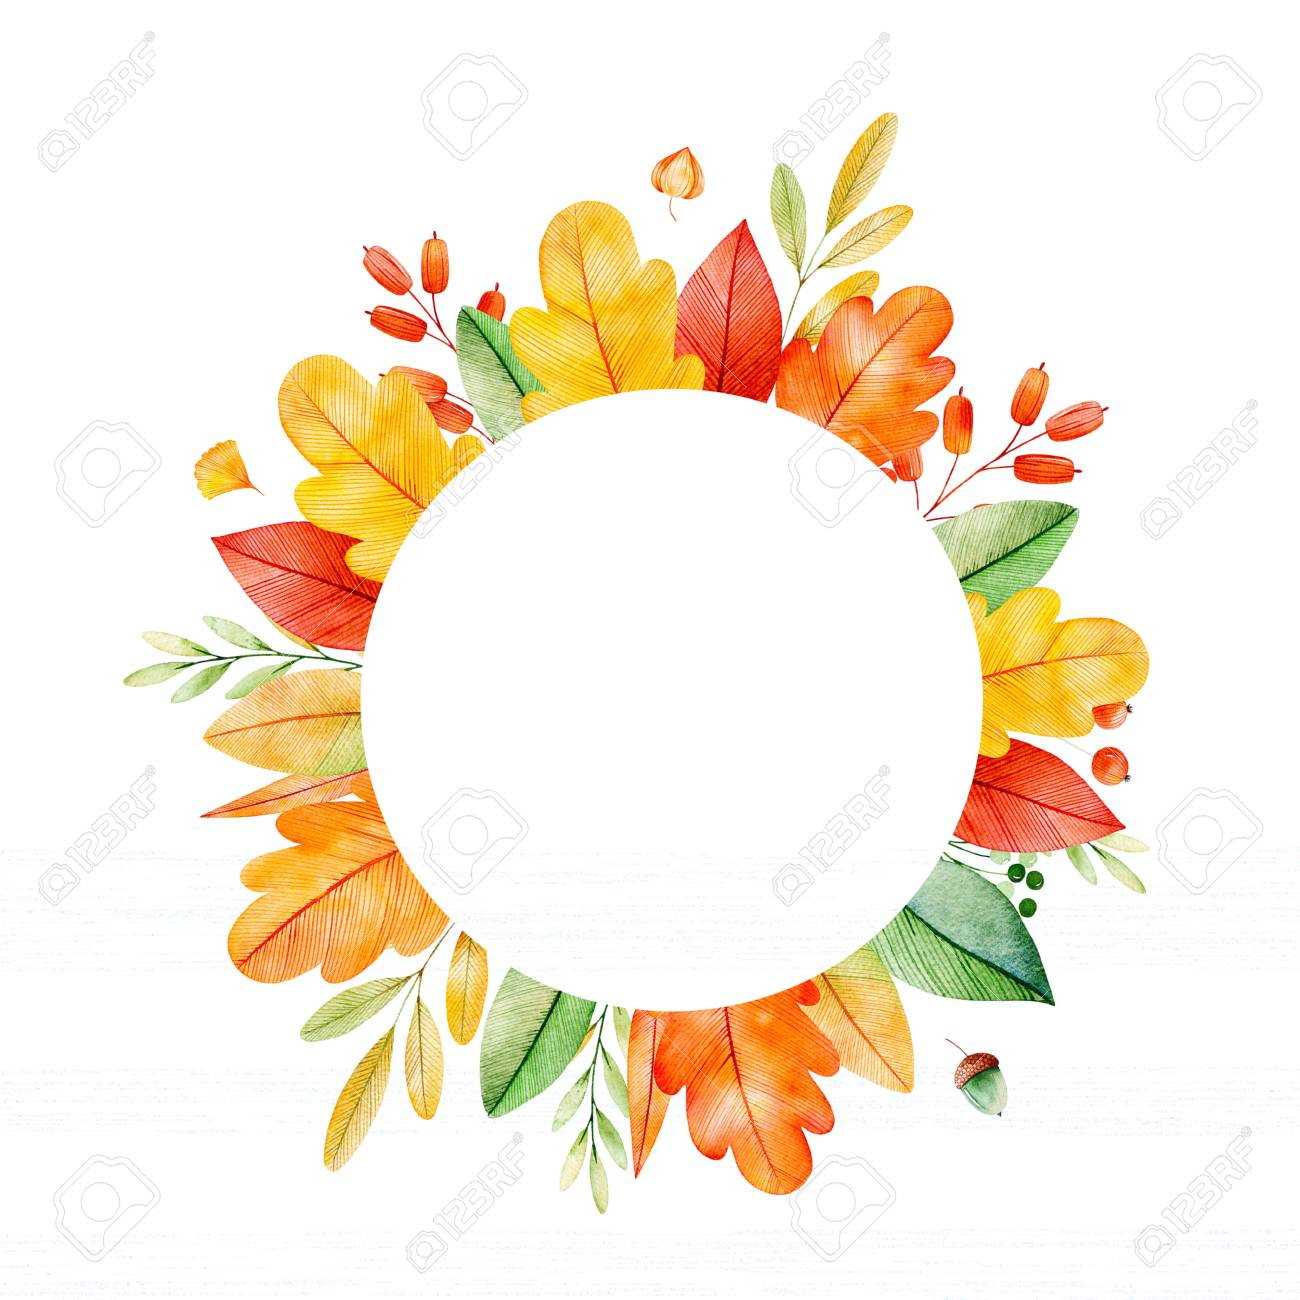 Great Colorful Autumn Round Frame With Bright Fall Leaves, Branches And Berries.  My Lovely Autumn